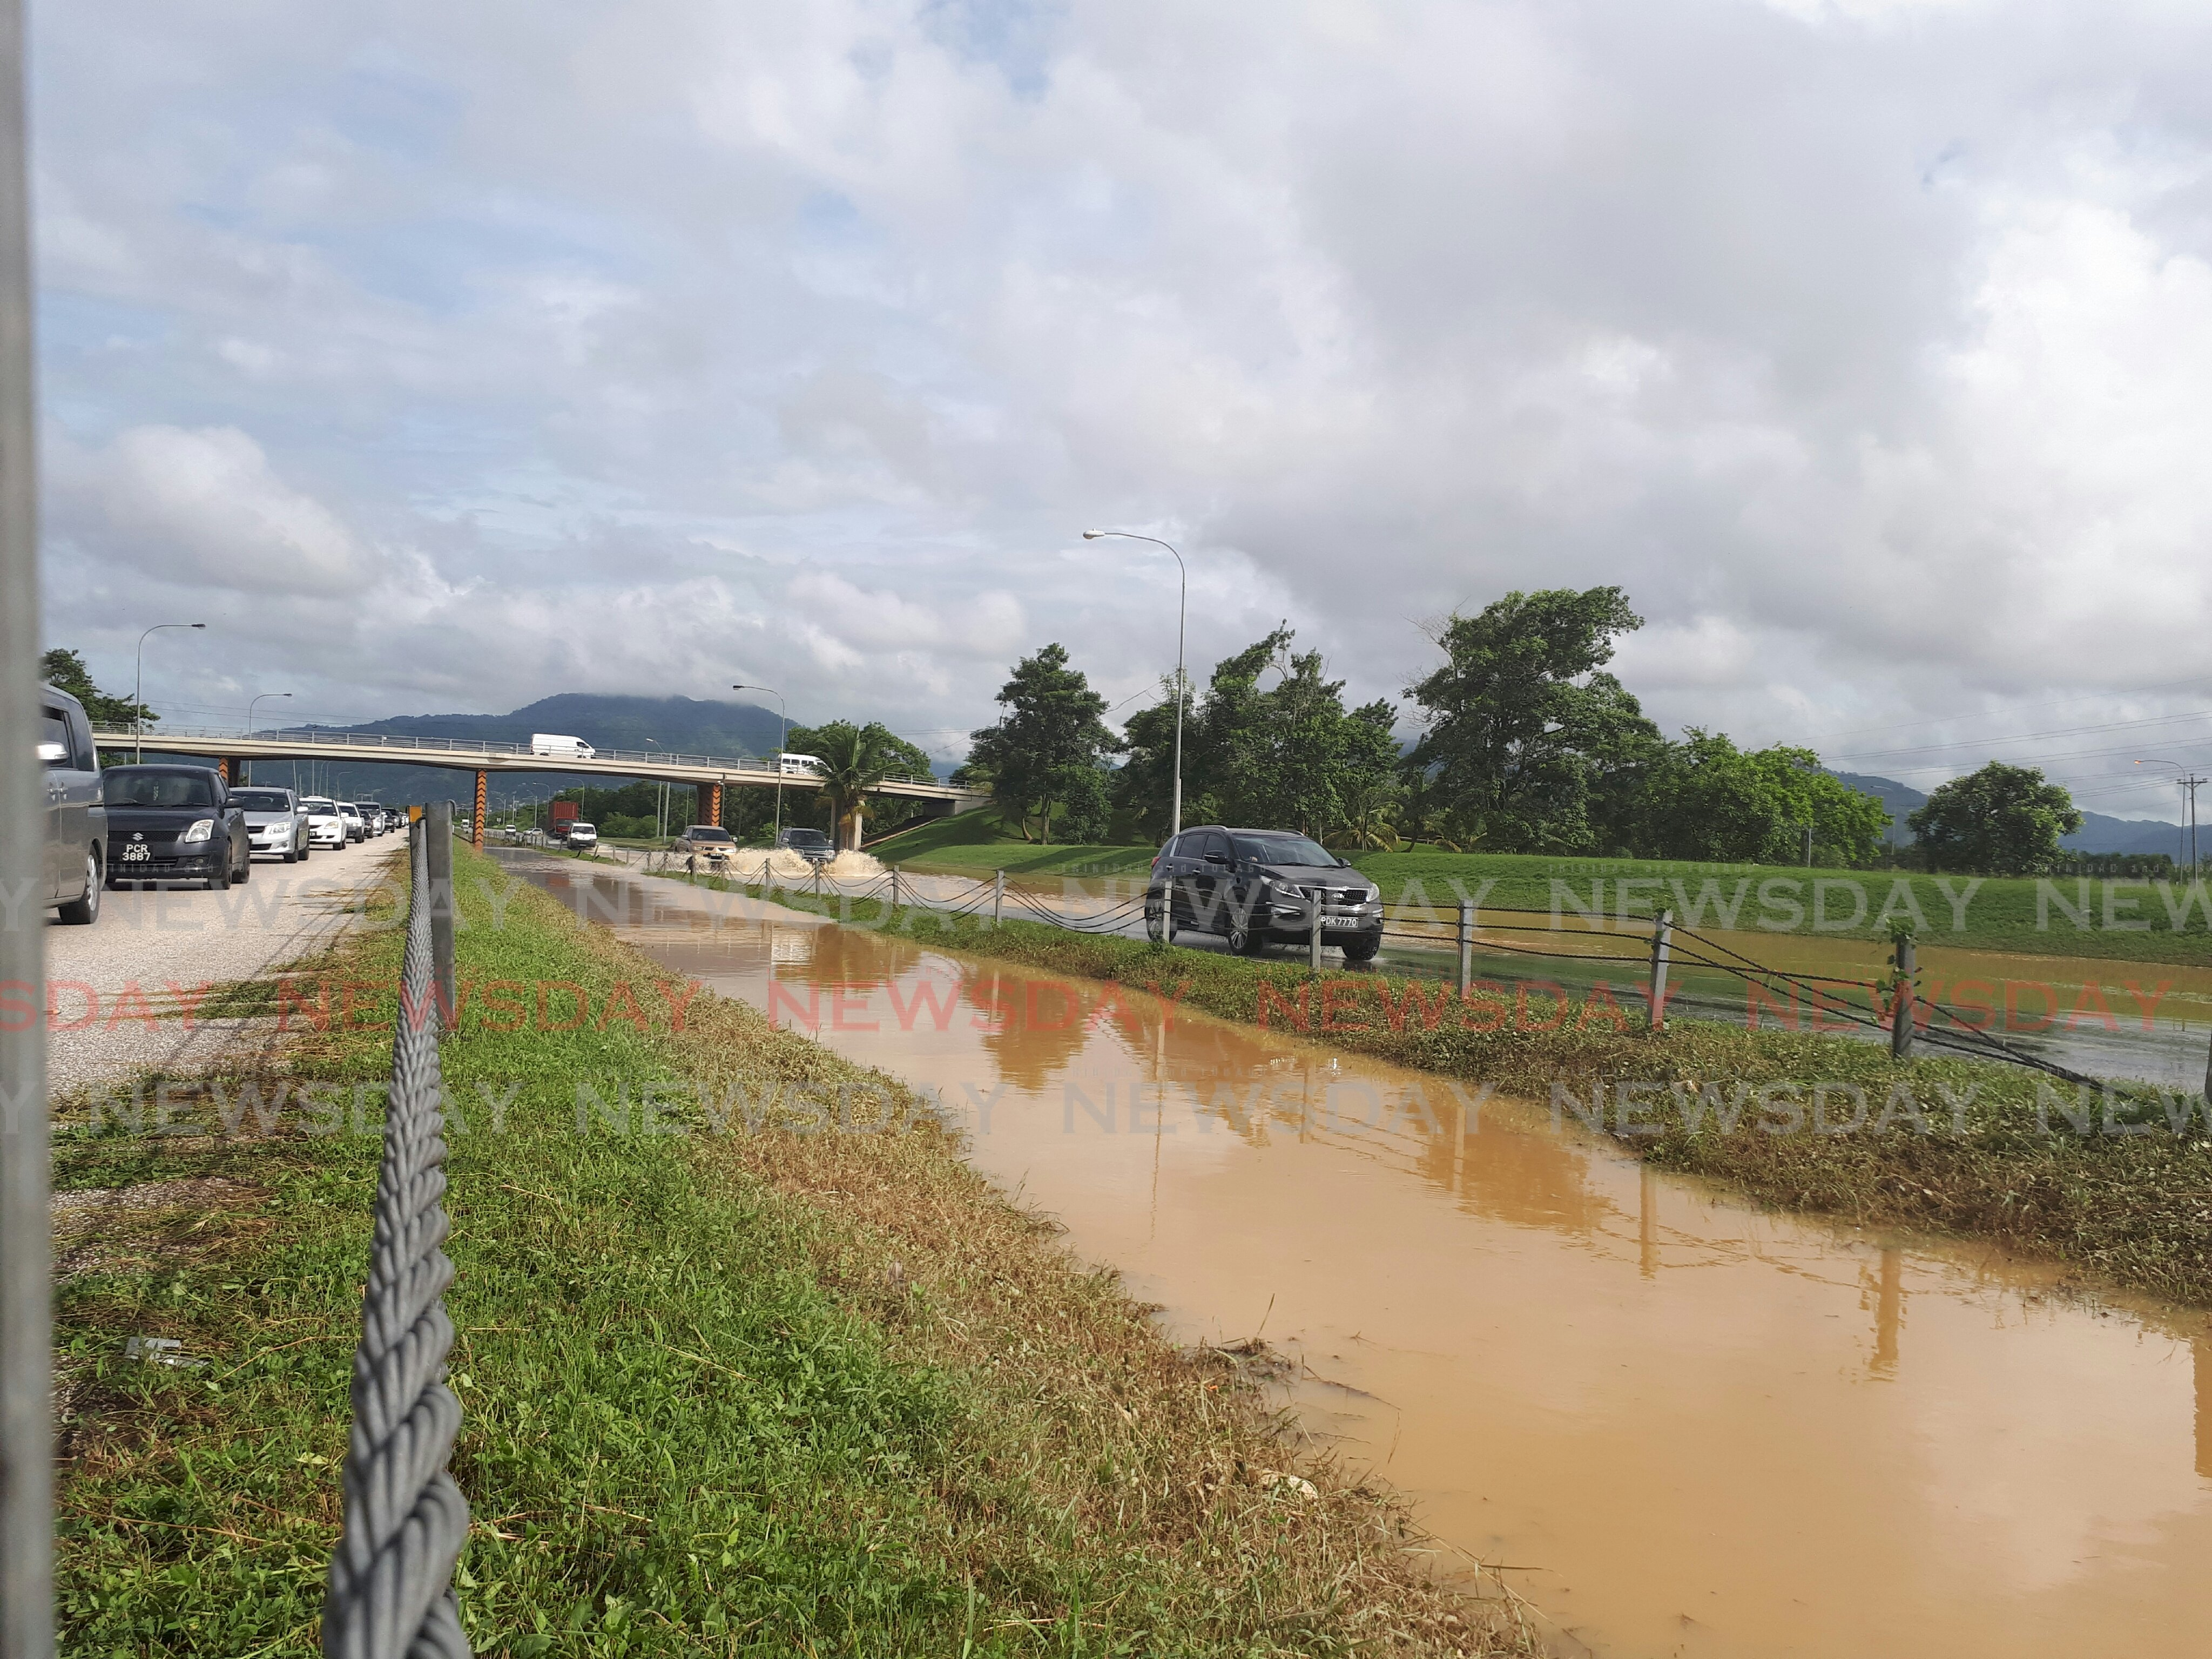 Vehicles drive on the northbound and southbound lanes of the Uriah Butler Highway near  the Caroni flyover. Phot by Kalifa Sarah Clyne